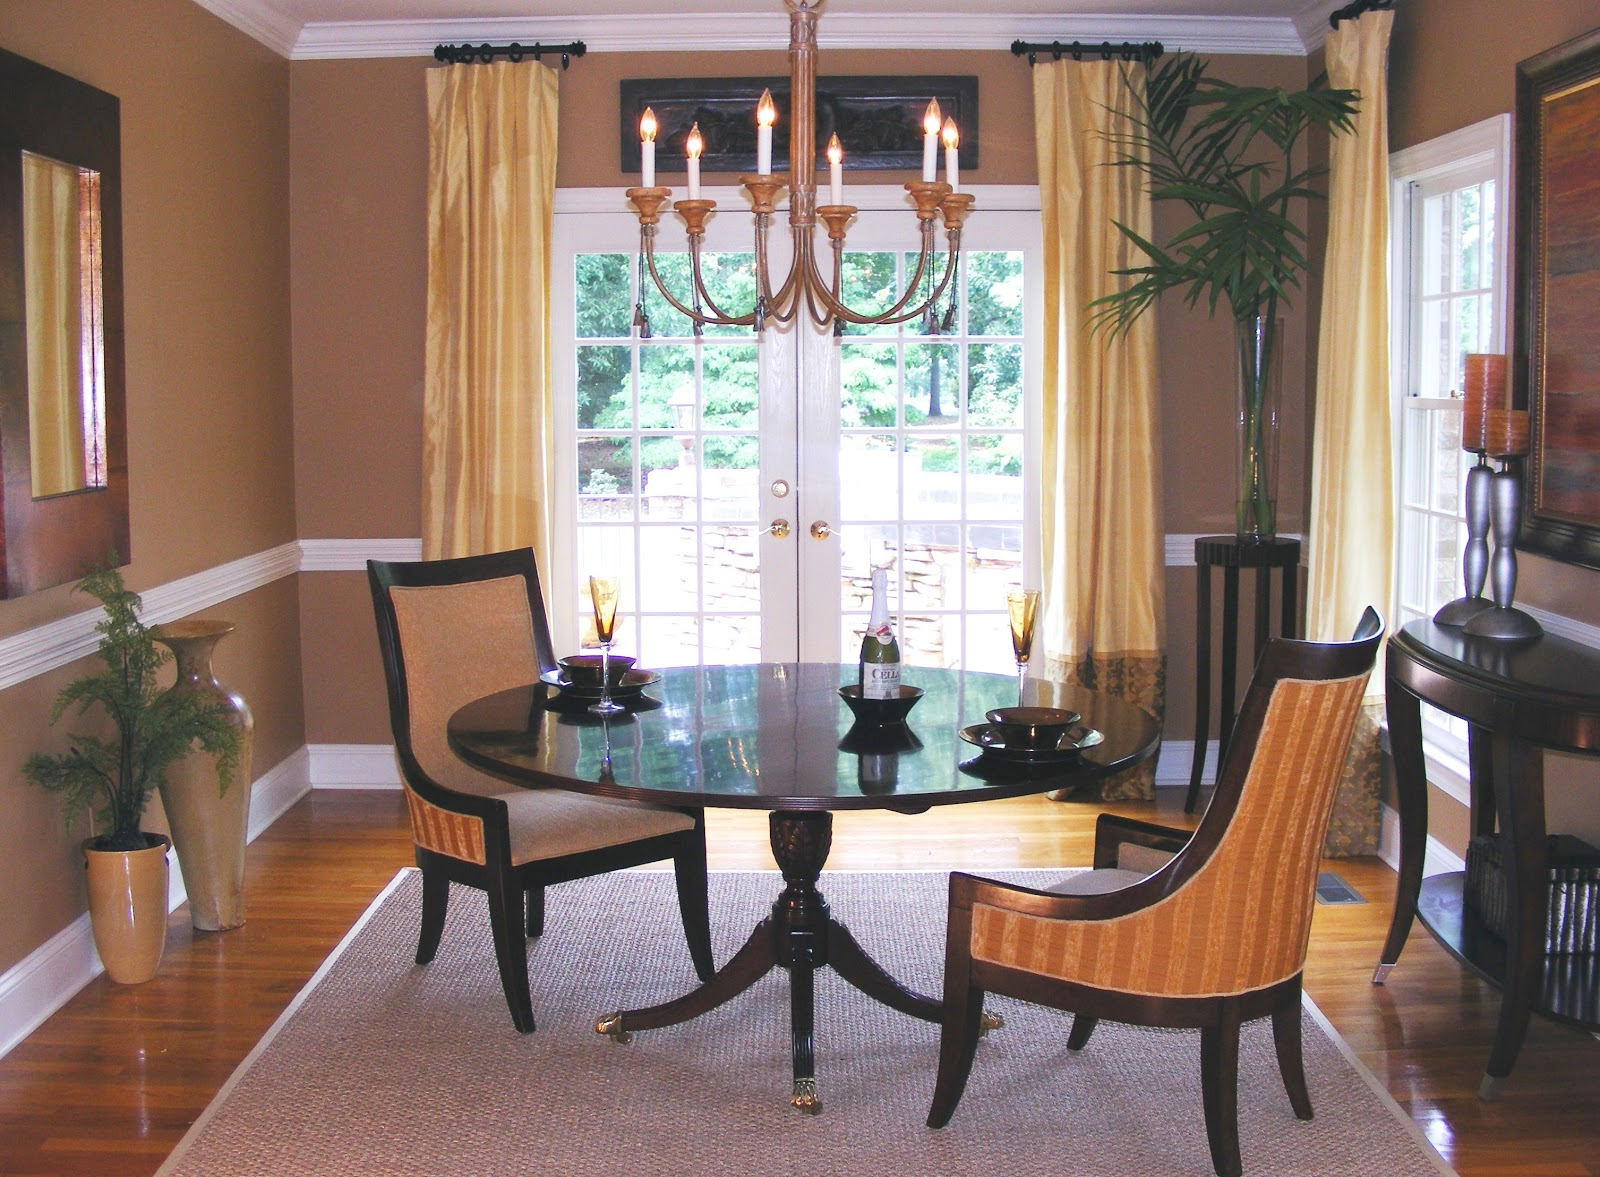 In this Greensboro NC dining room, the homeowner moves 4 chairs to the  living area when they're not needed for formal dining. This allows the  dining